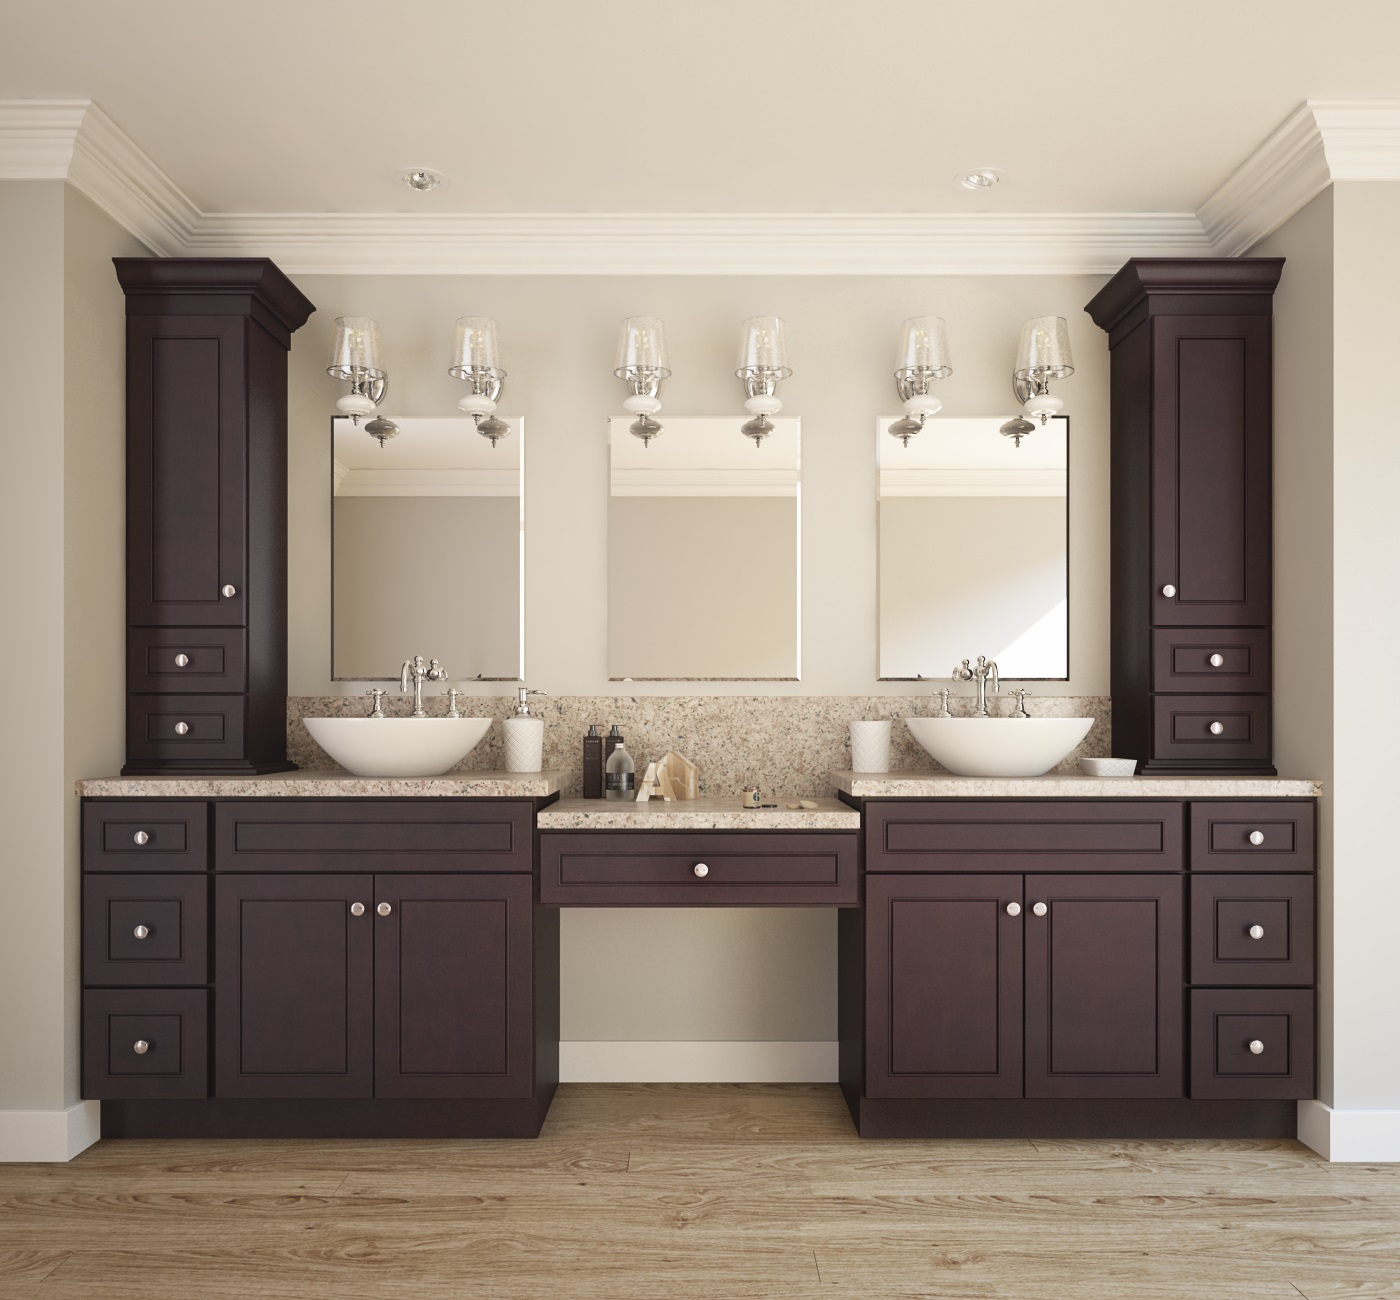 Ready To Assemble Bathroom Vanities & Cabinets